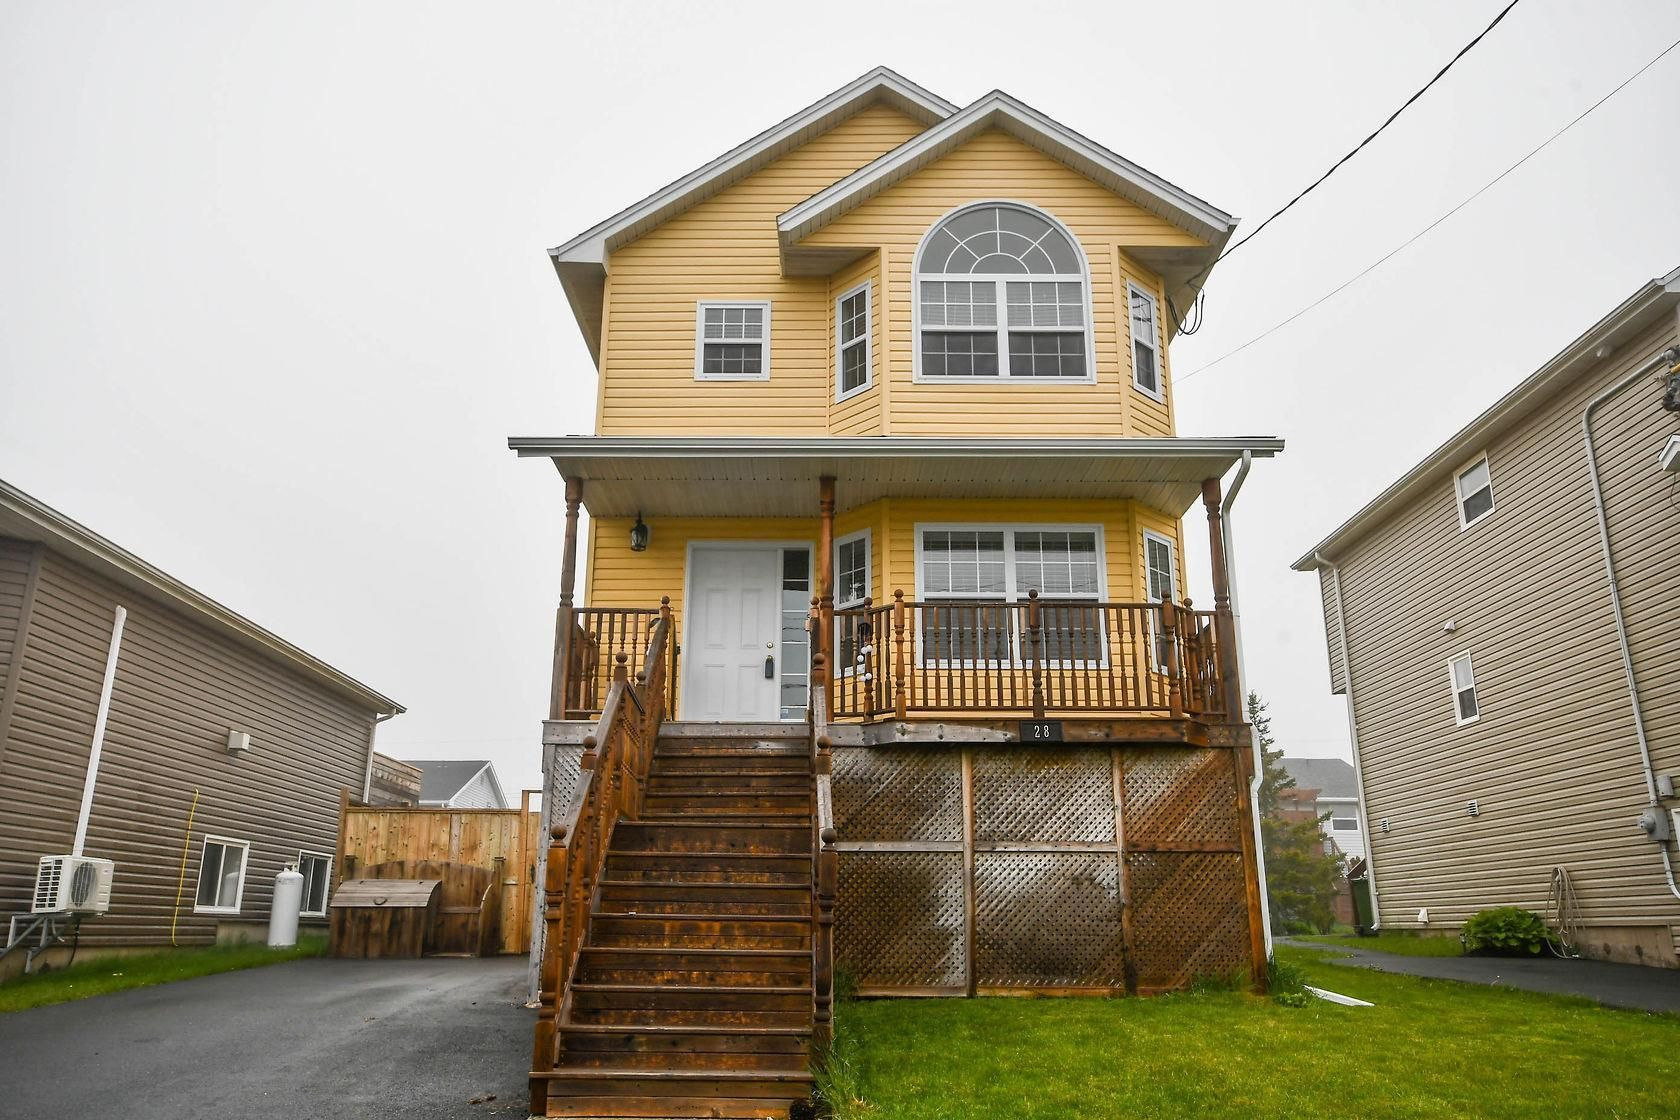 Main Photo: 28 Vicky Crescent in Eastern Passage: 11-Dartmouth Woodside, Eastern Passage, Cow Bay Residential for sale (Halifax-Dartmouth)  : MLS®# 202113609